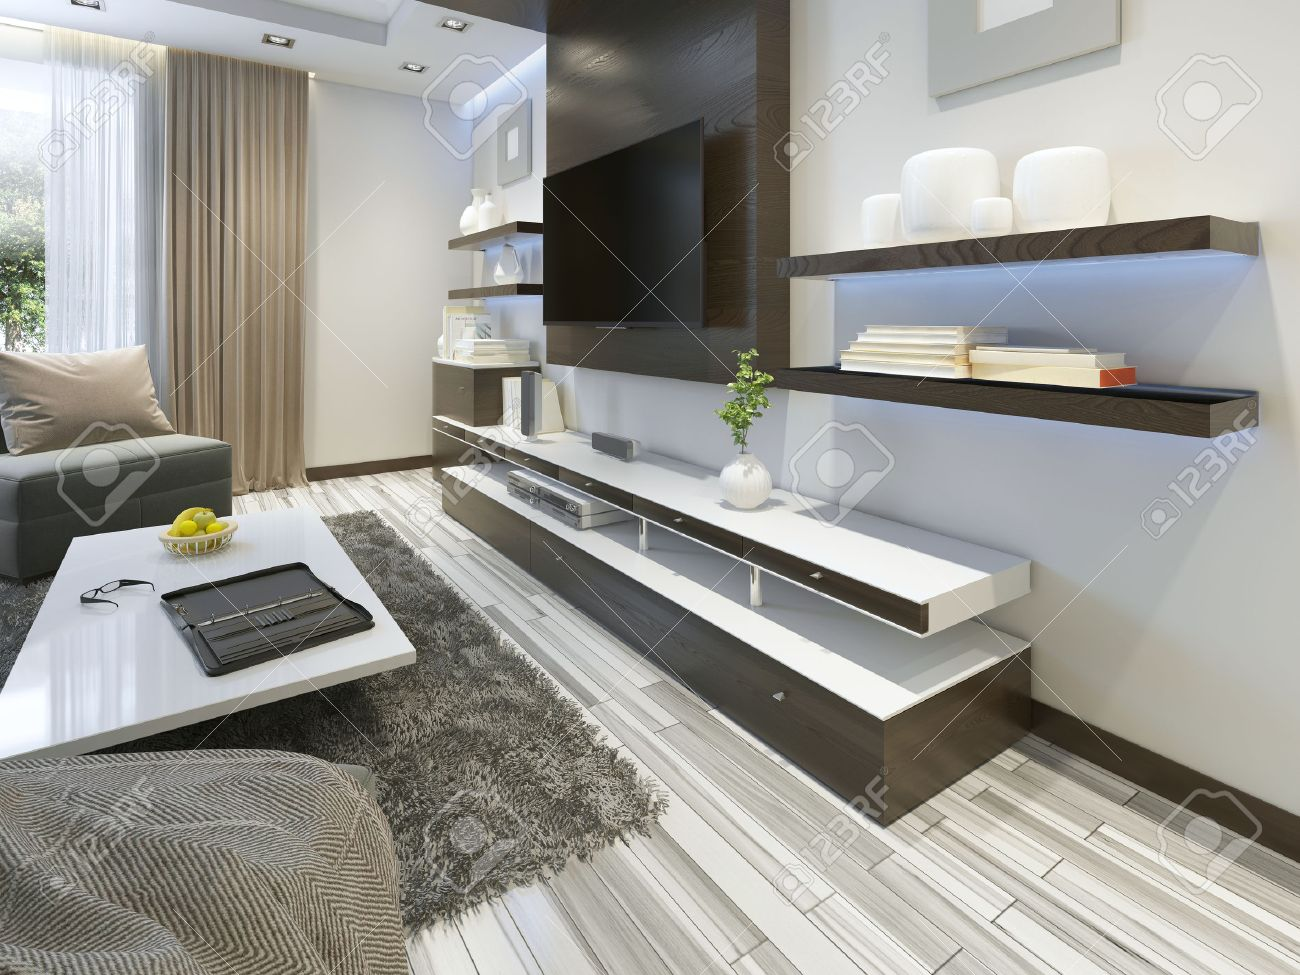 Audio System With TV And Shelves In The Living Room Contemporary Style.  Wood Veneering Furniture